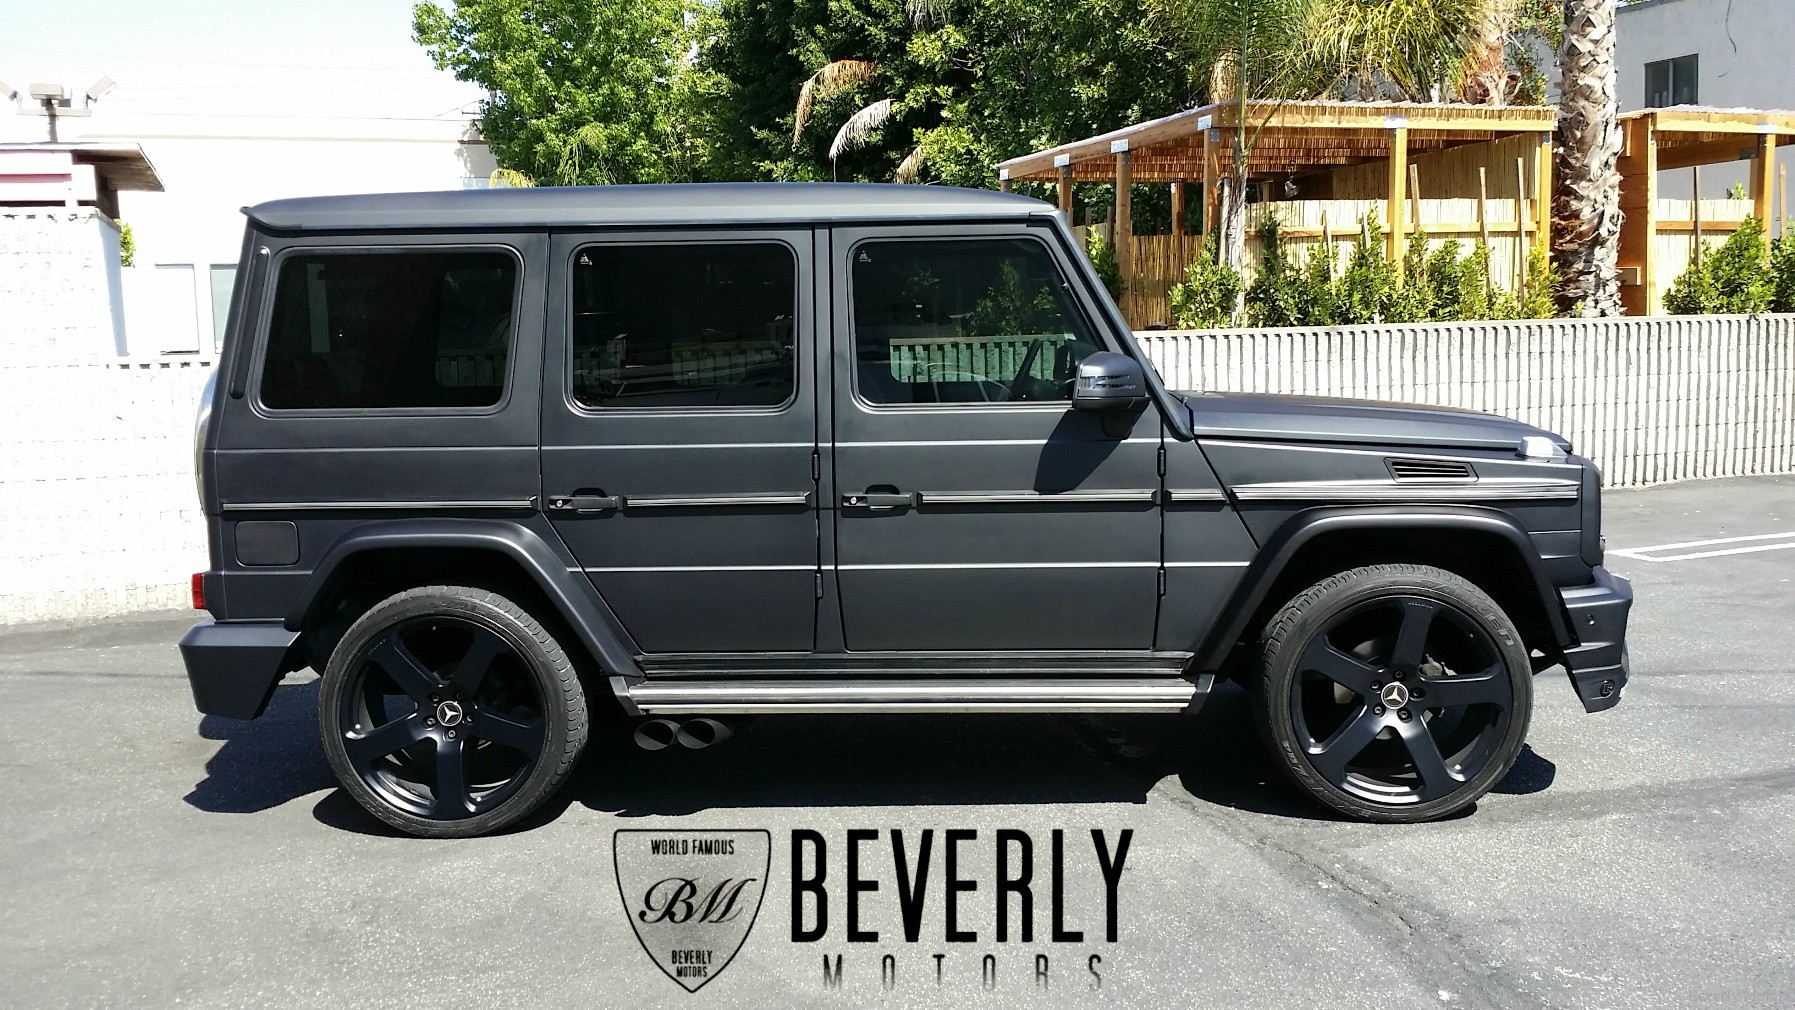 G Wagon Lease >> Beverly Motors Inc : Glendale Auto Leasing and Sales. New Car Lease Specials Burbank, Beverly ...